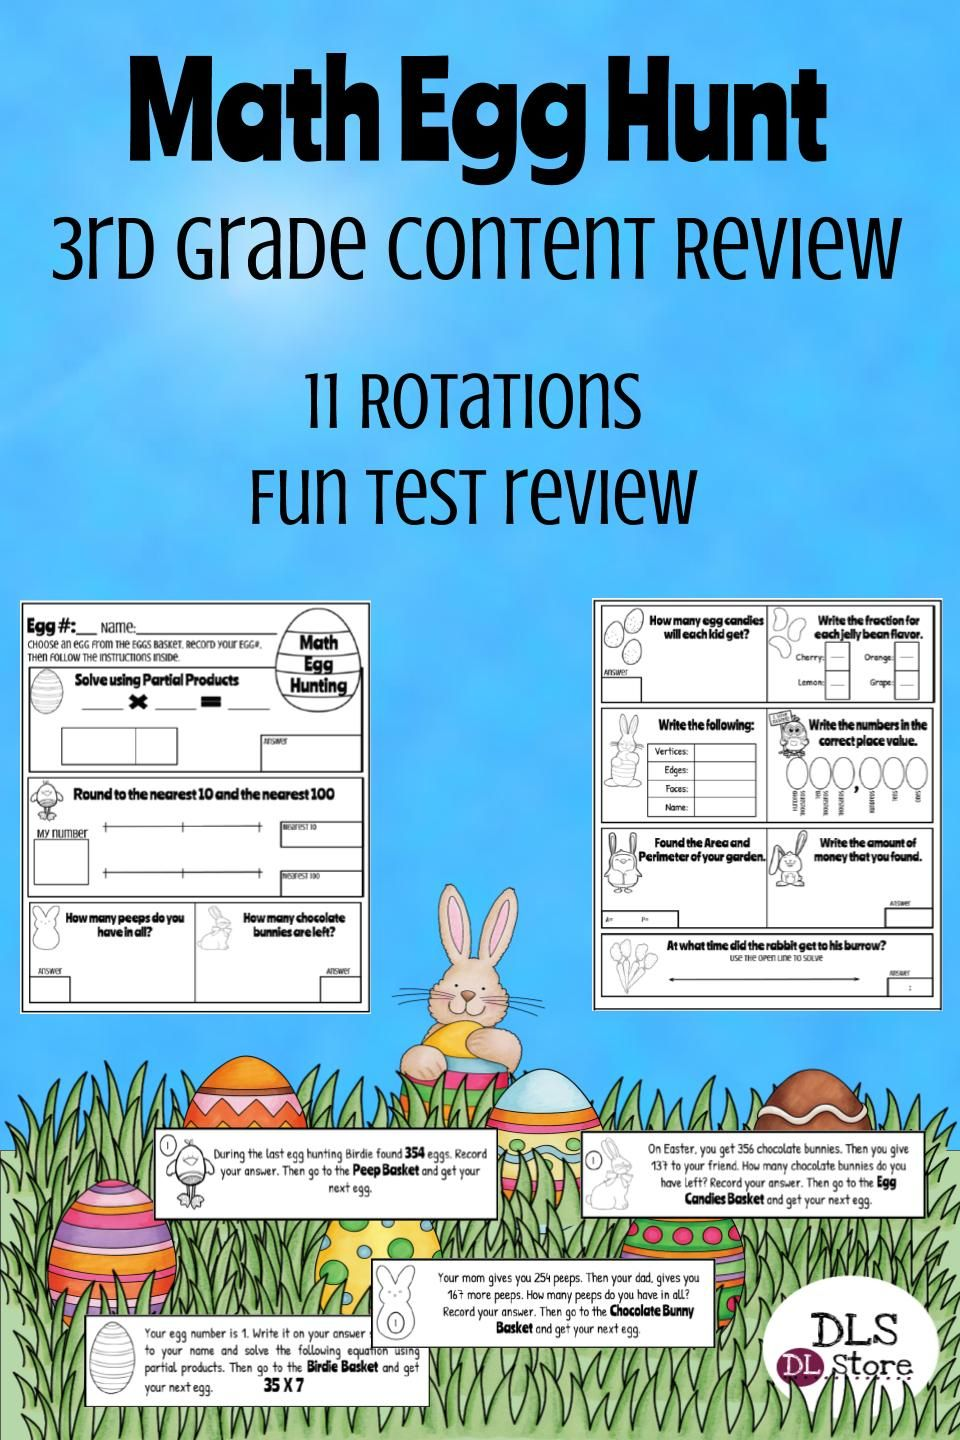 3rd Grade Math Easter Egg Hunt - Test Prep - STAAR | Fun math ...